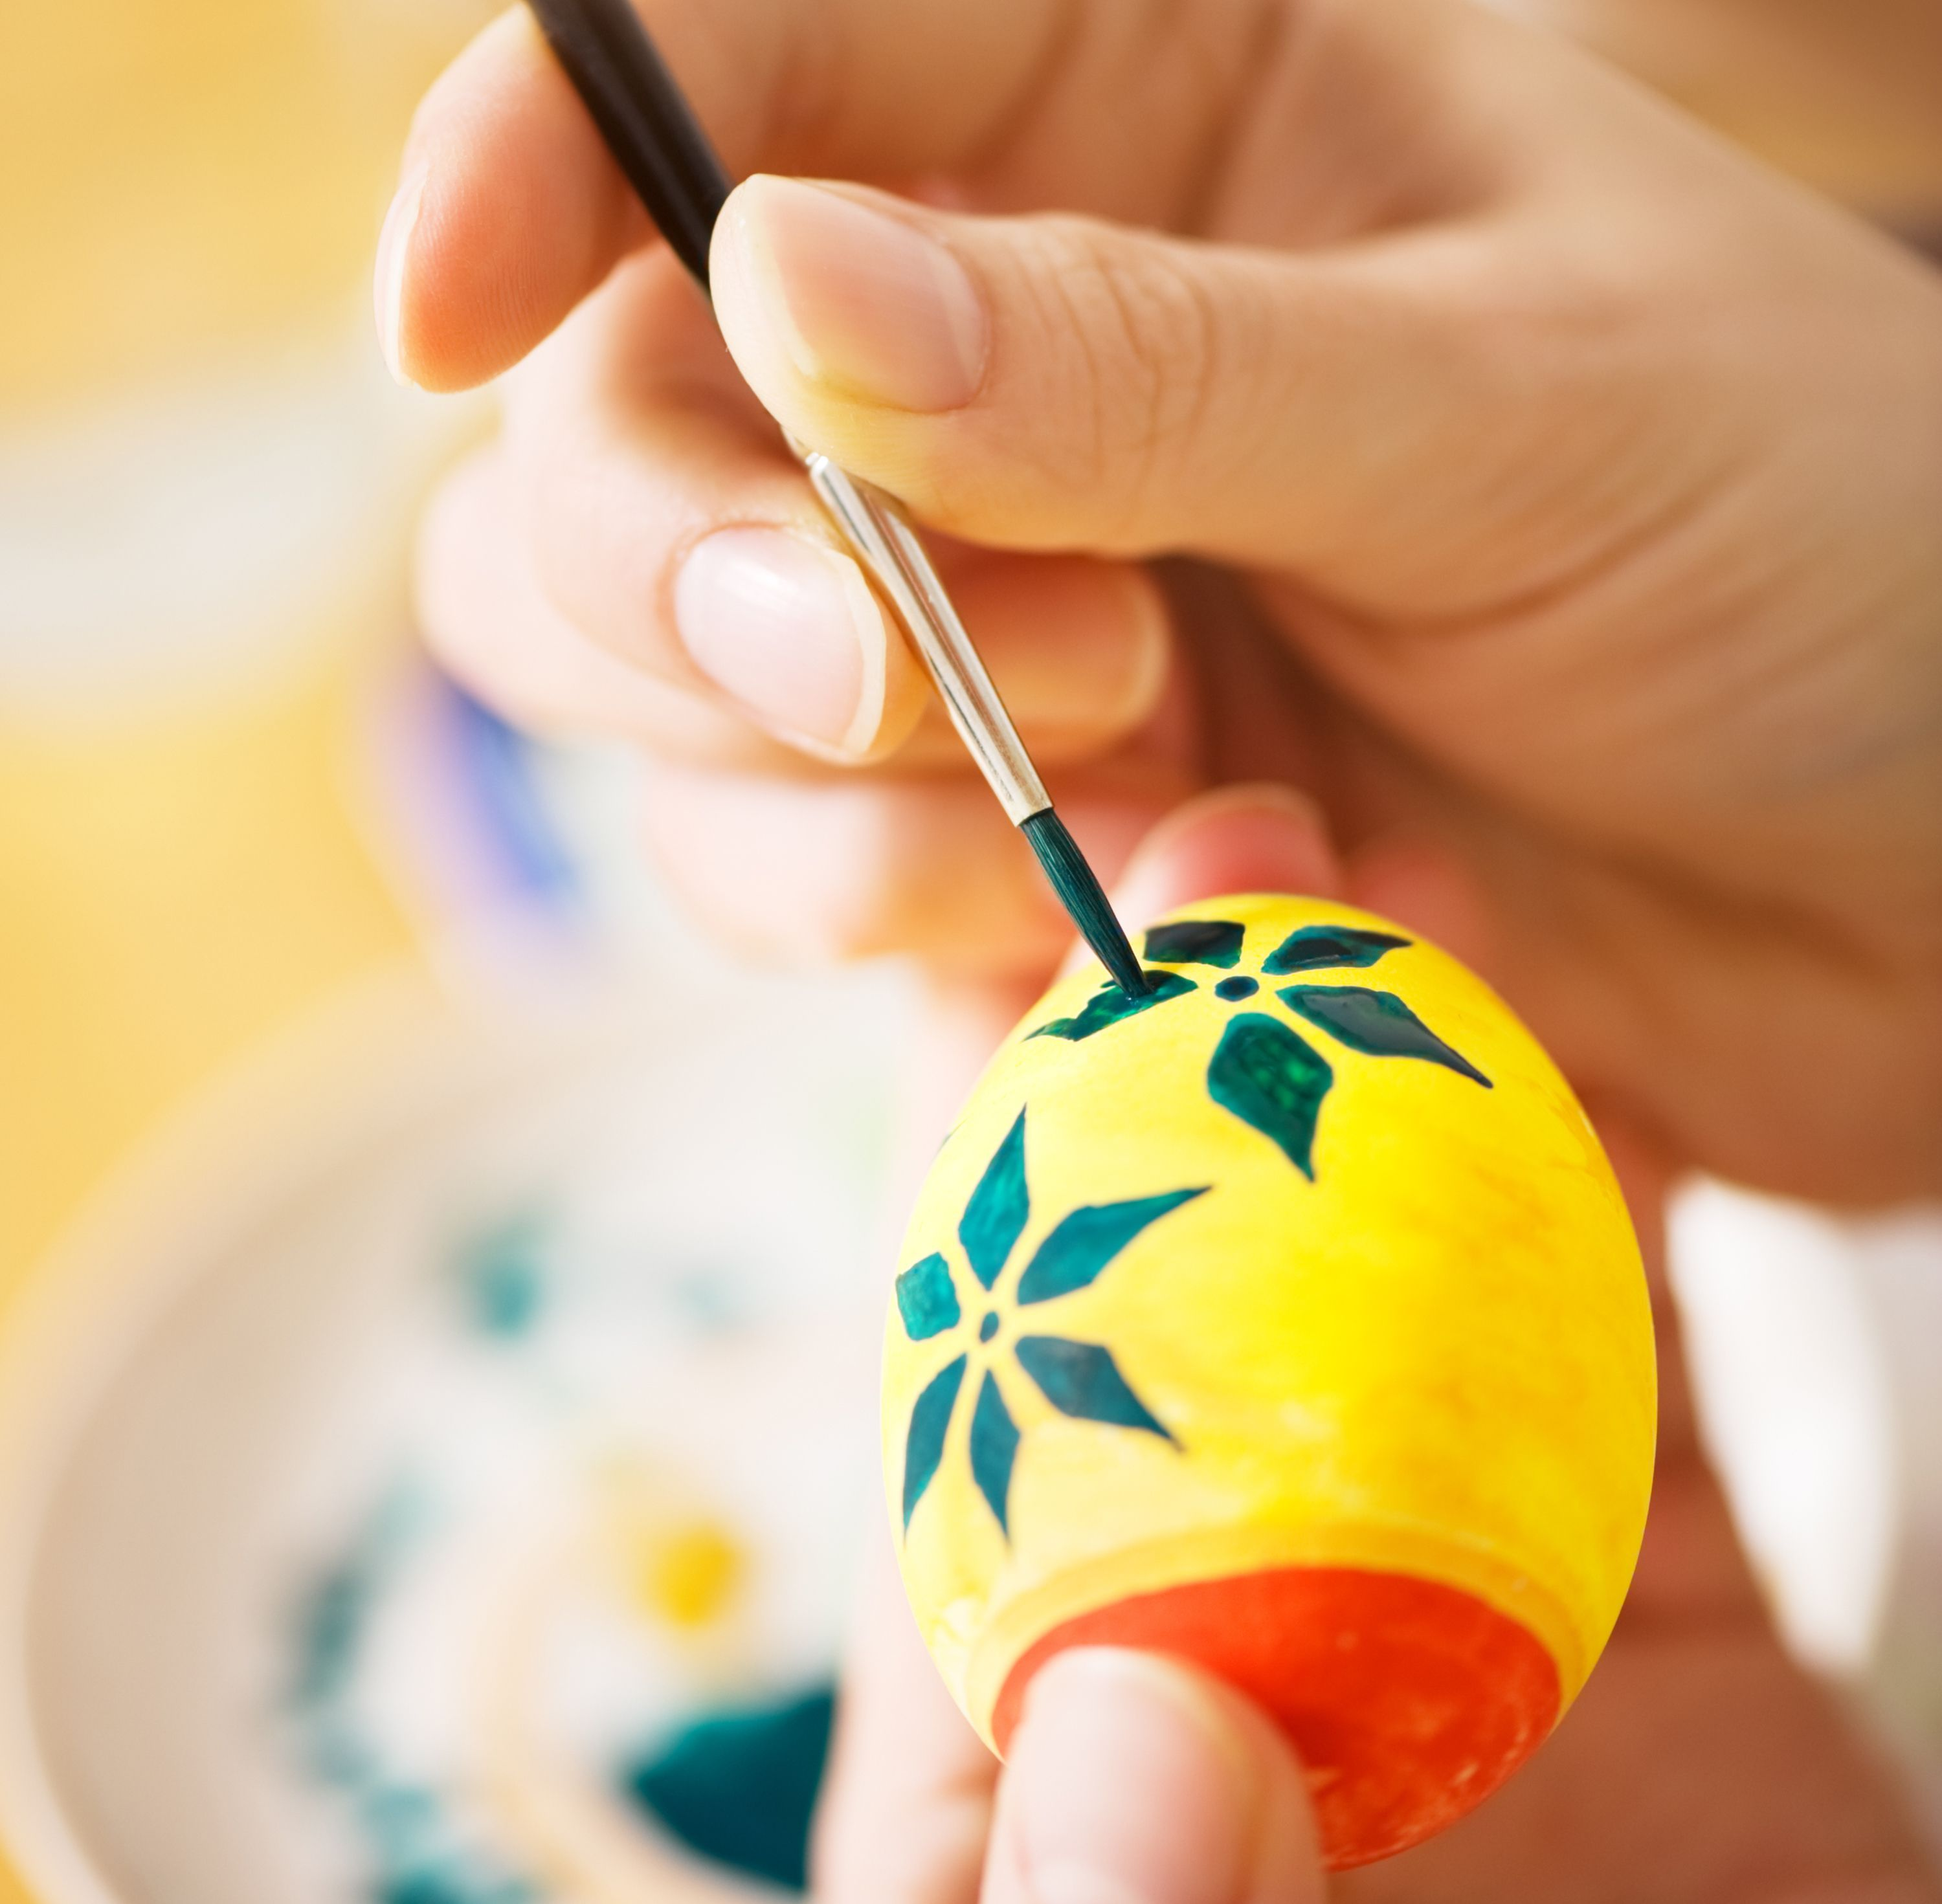 Easter Egg Decorating Ideas: How To Paint Hard Boiled Eggs